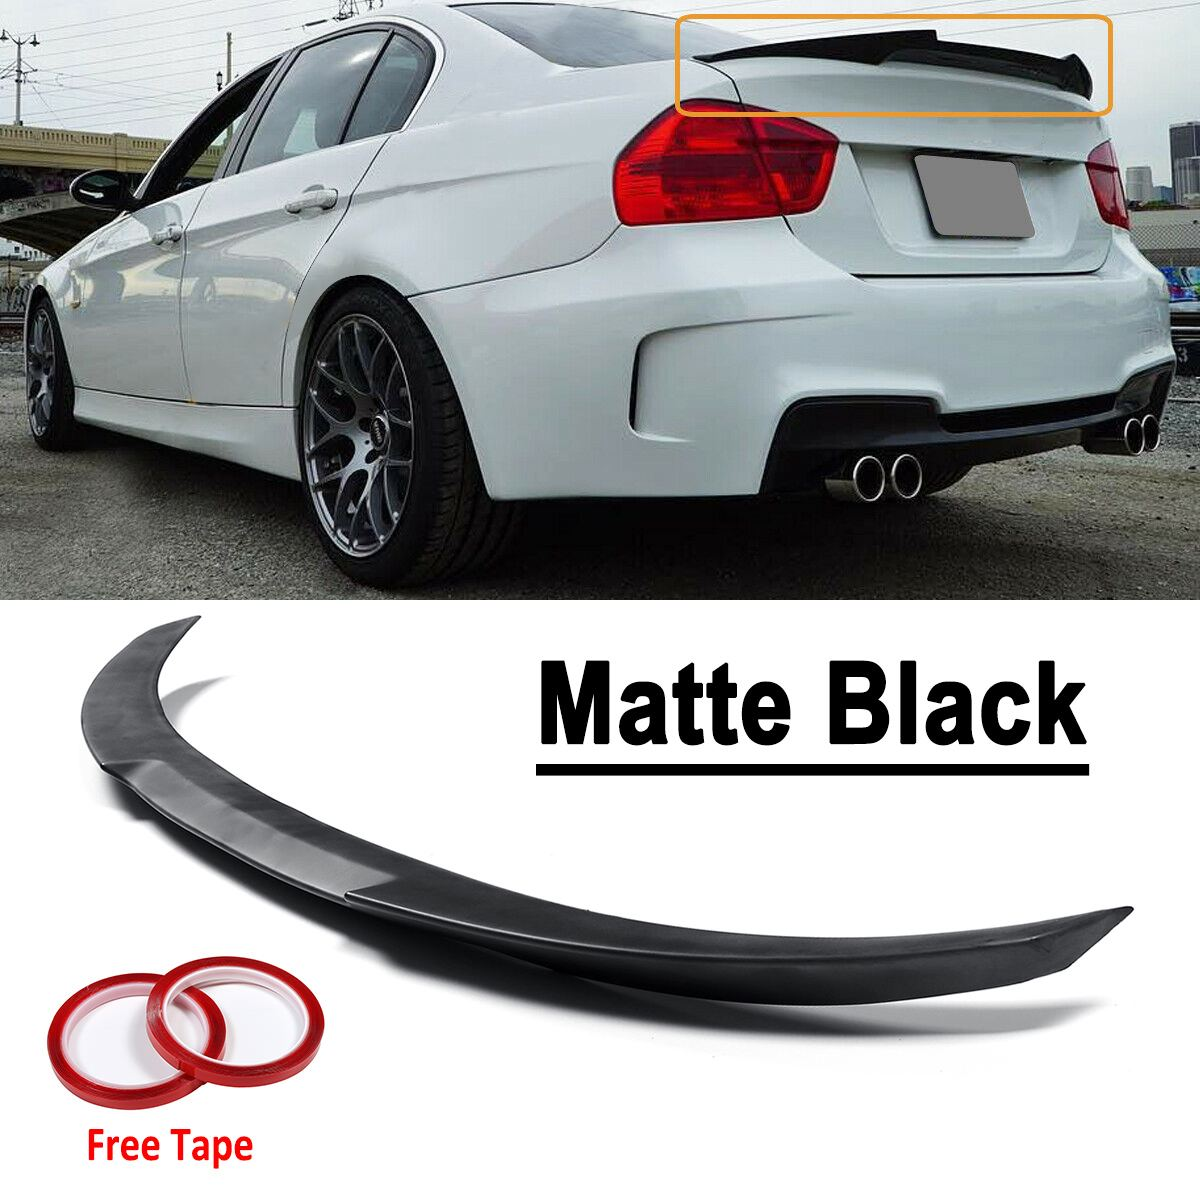 Matte Black ABS Kofferbak Spoiler Wing M4-Style Voor BMW 2006-2011 E90 3 SERIE 4 DEUR SEDAN Voor BMW 2008-12 M3 Sedan